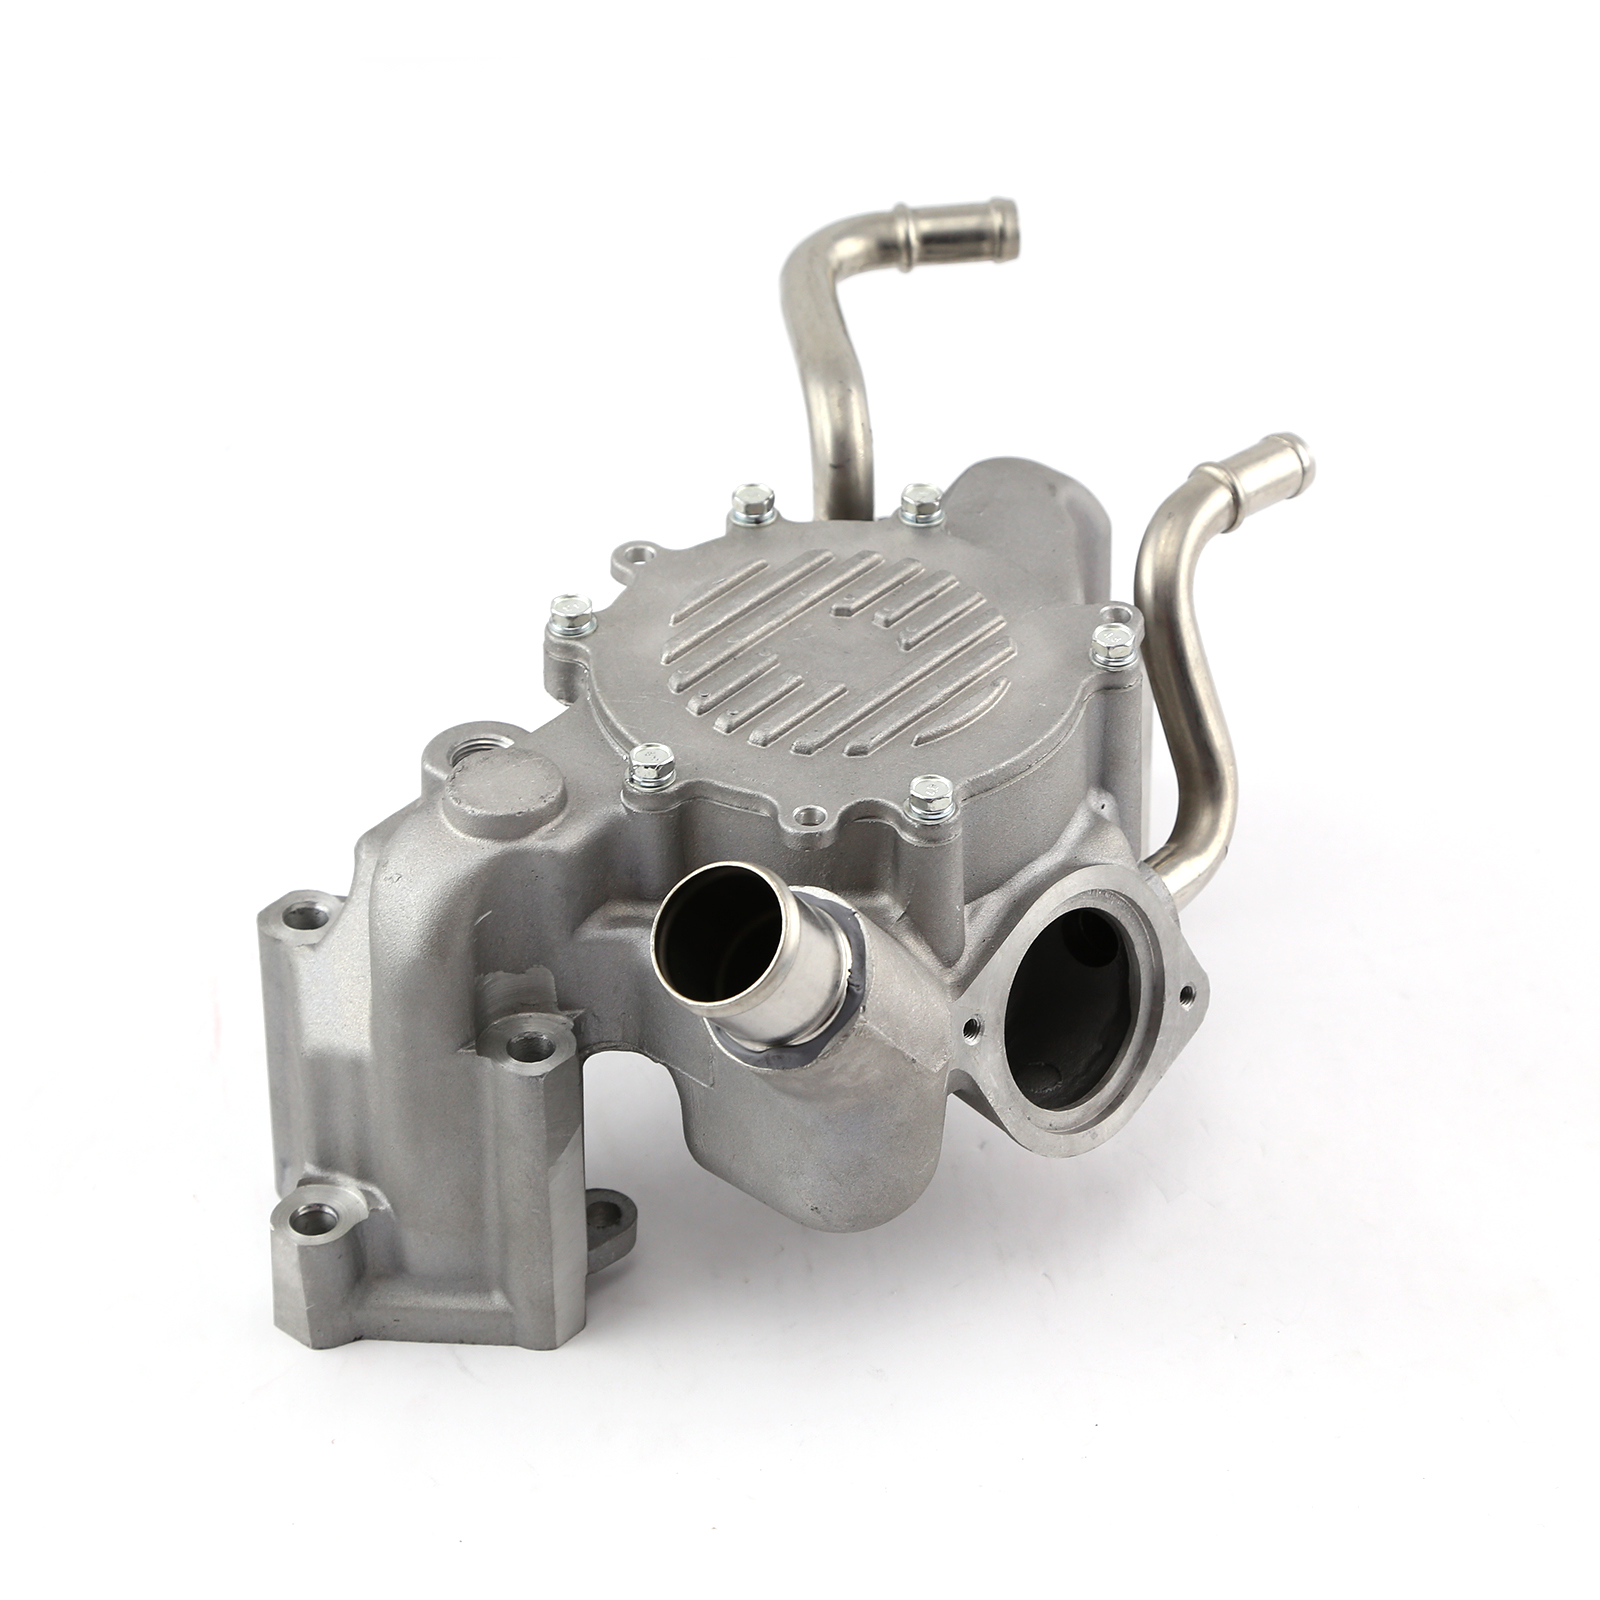 Chevy 350 Lt1 Engine 96 97: Chevy SB 350 Lt1 1995-96 High Volume Aluminum Water Pump